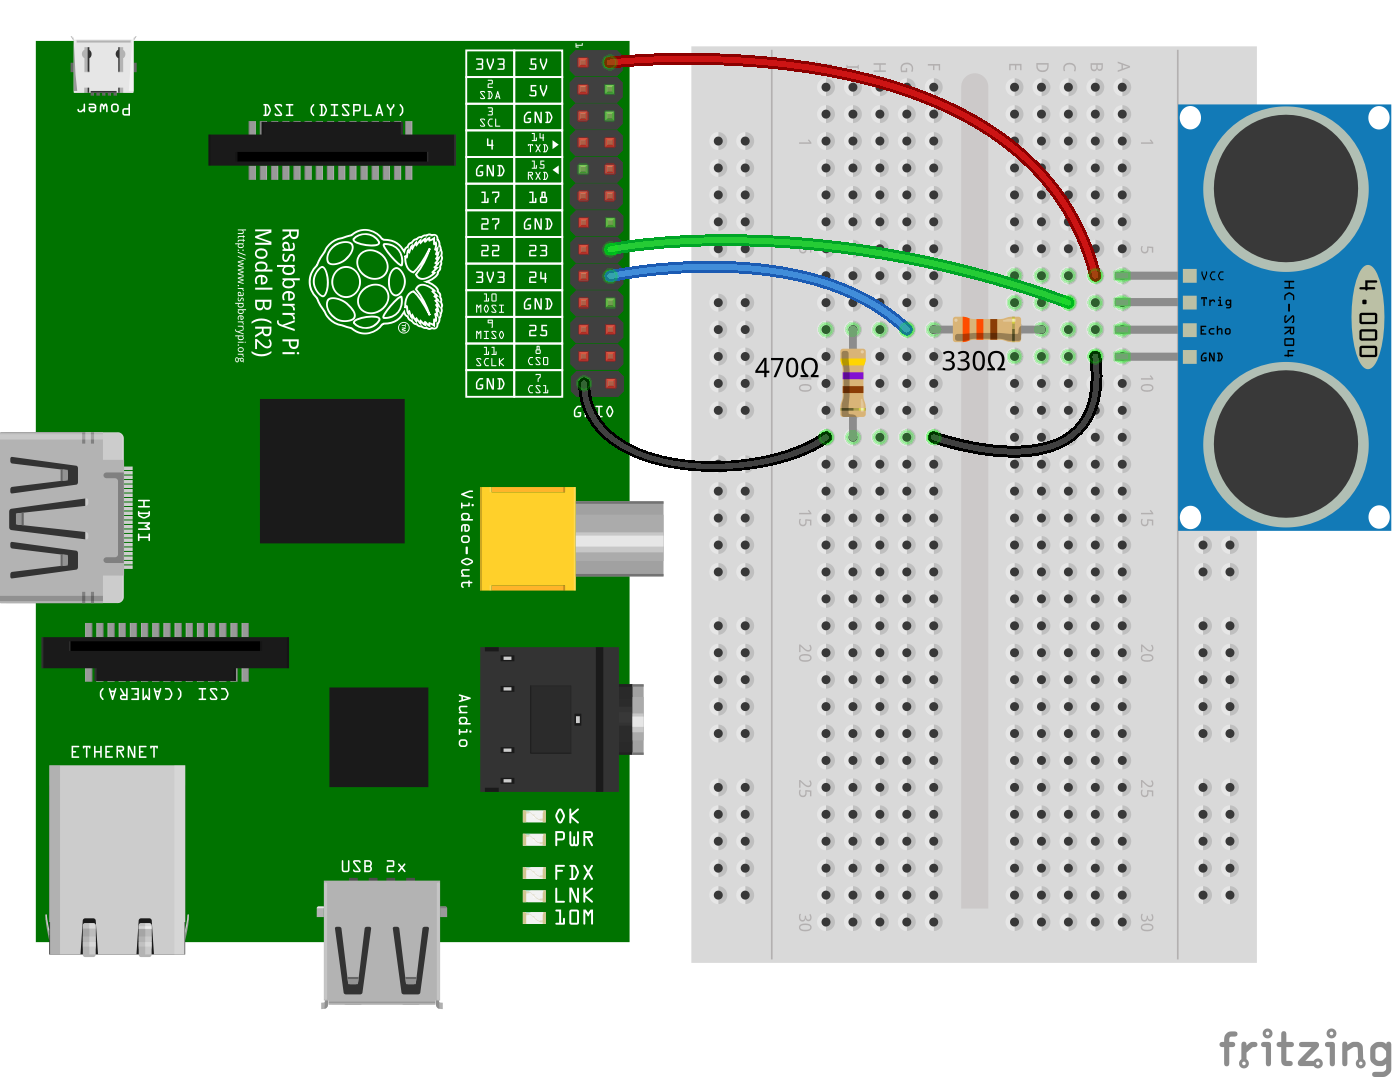 Wiringpi Python Serial Example Github Fivdi Pigpio Fast Gpio Pwm Servo Control State Change The Number Of Microseconds It Takes Sound To Travel 1cm At 20 Degrees Celcius Const Microsecdonds Per Cm 1e6 34321 Trigger New Gpio23